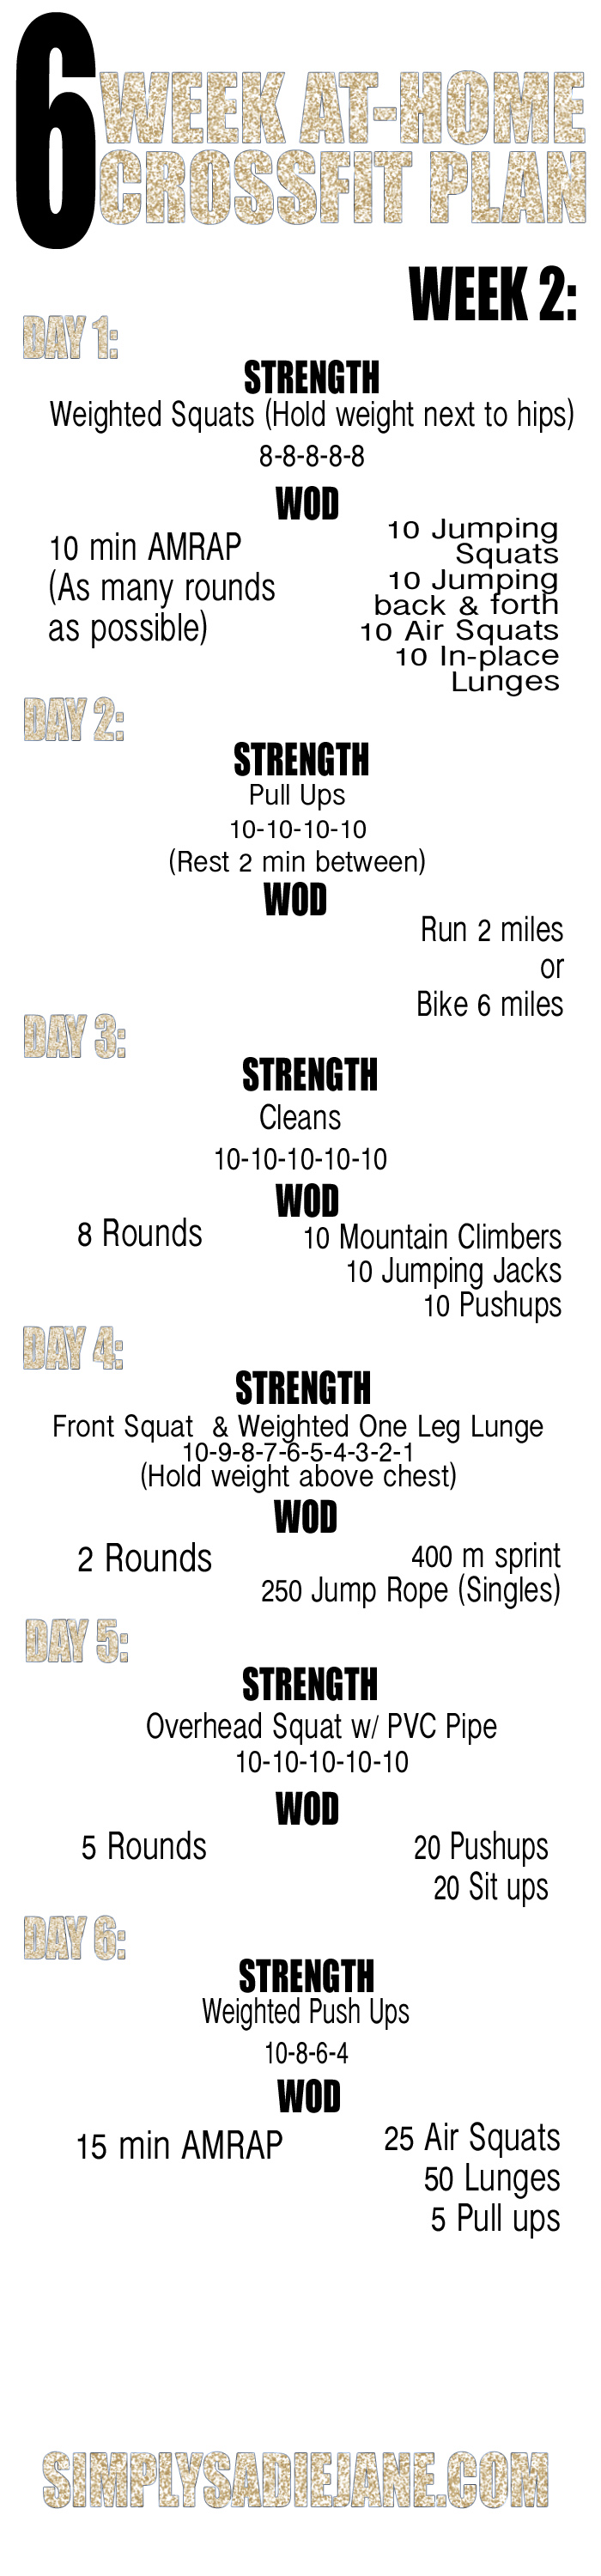 Crossfit Workouts For Beginners Pdf Workout Krtsy